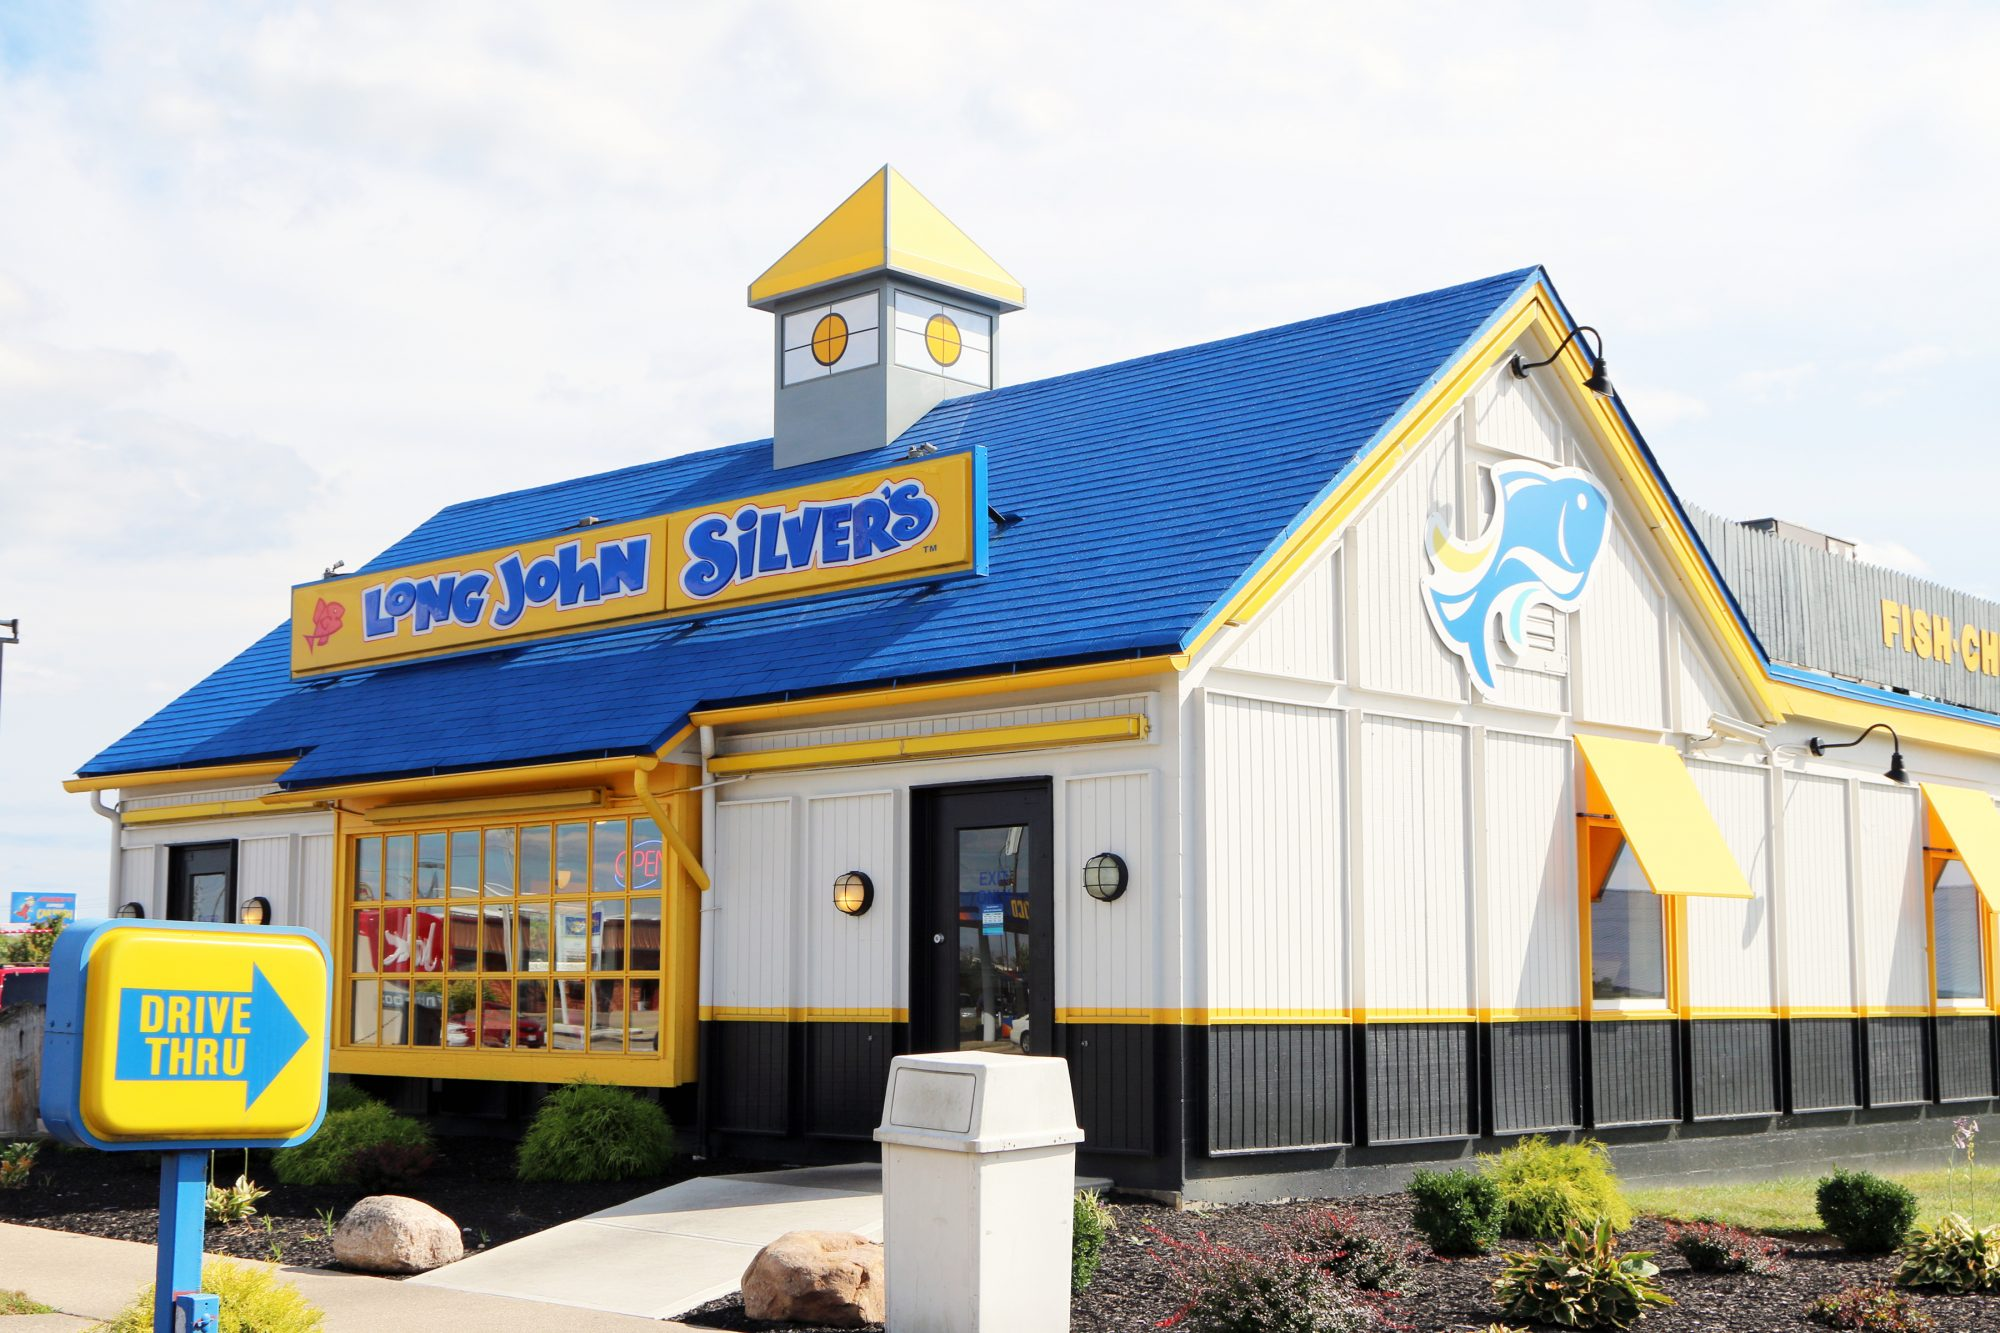 Long John Silver's seafood resaurant